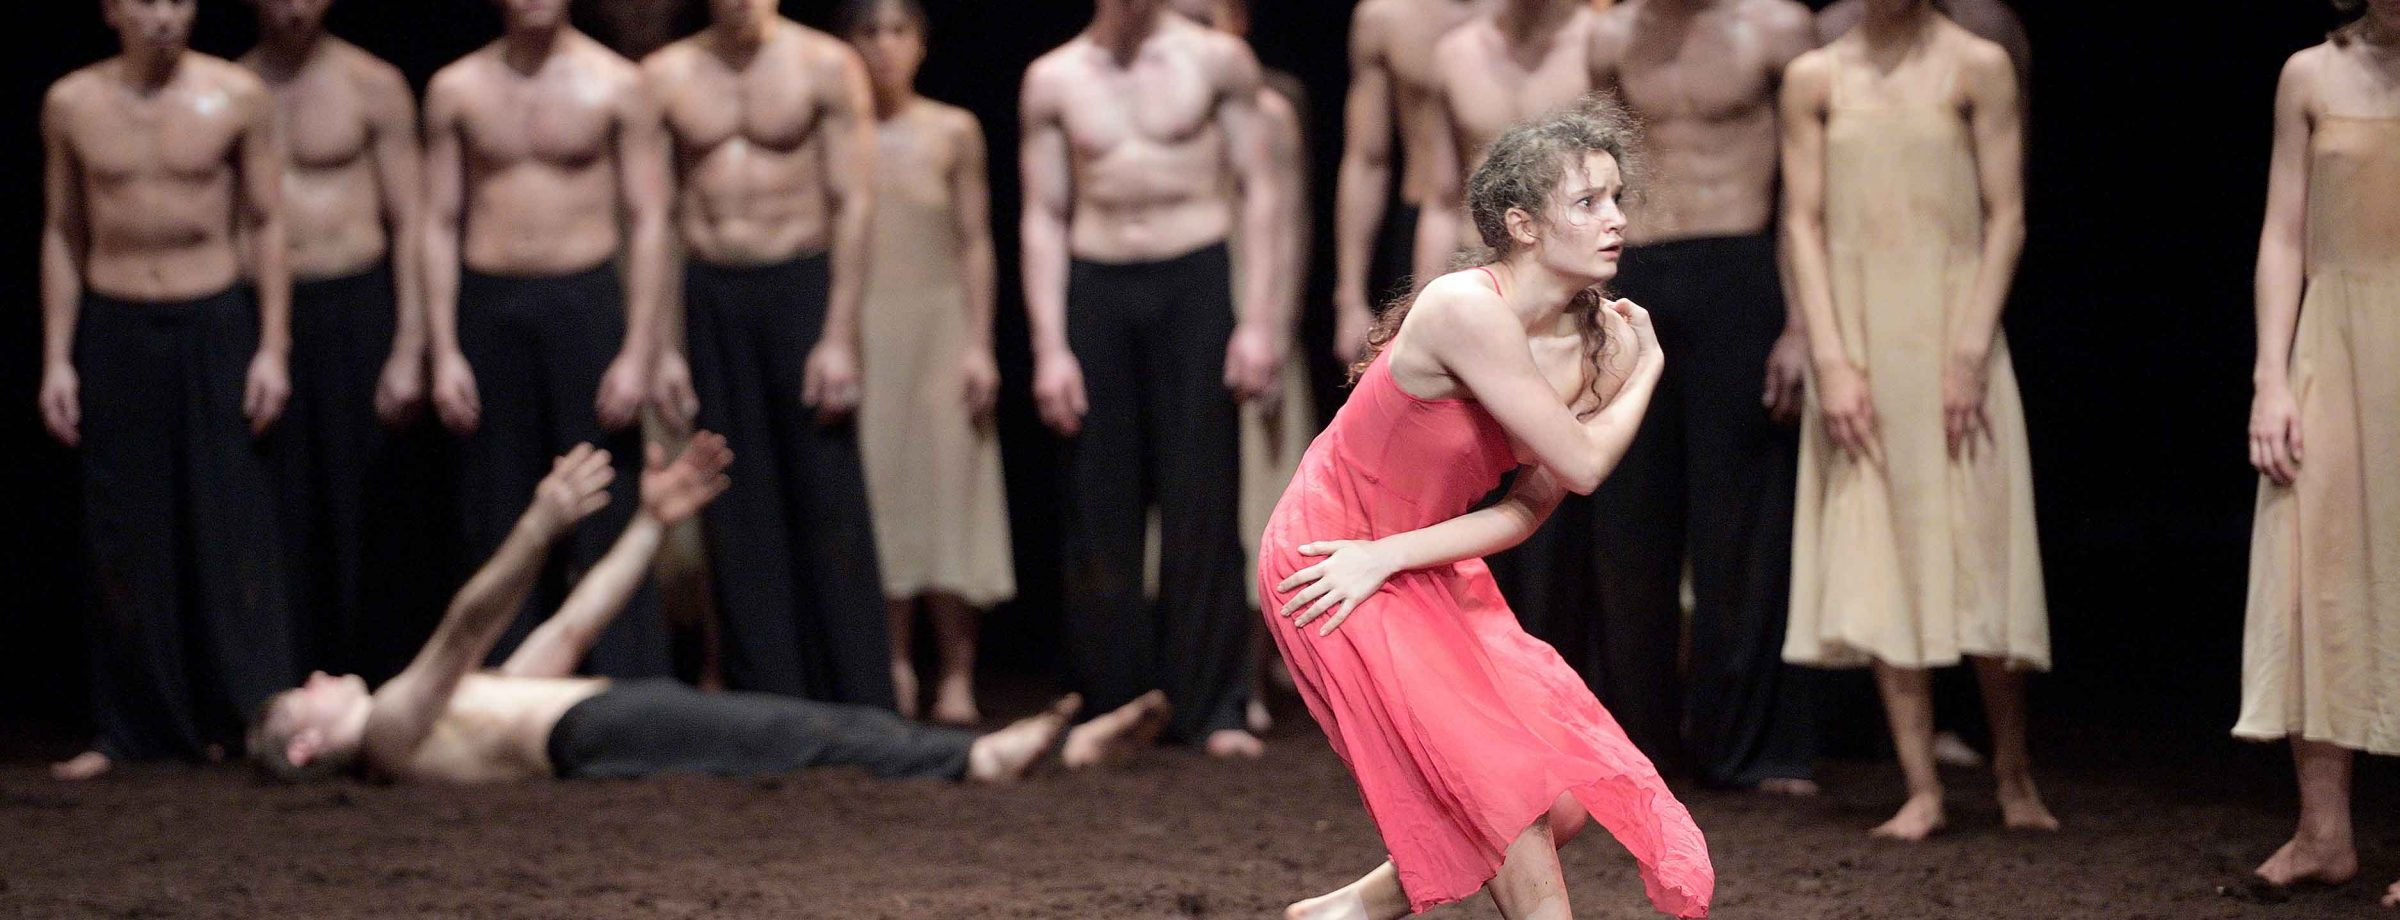 Pina-Bausch's-Le-Sacre-du-printemps-by-English-National-Ballet-(c)-Laurent-Liotardo-(4)